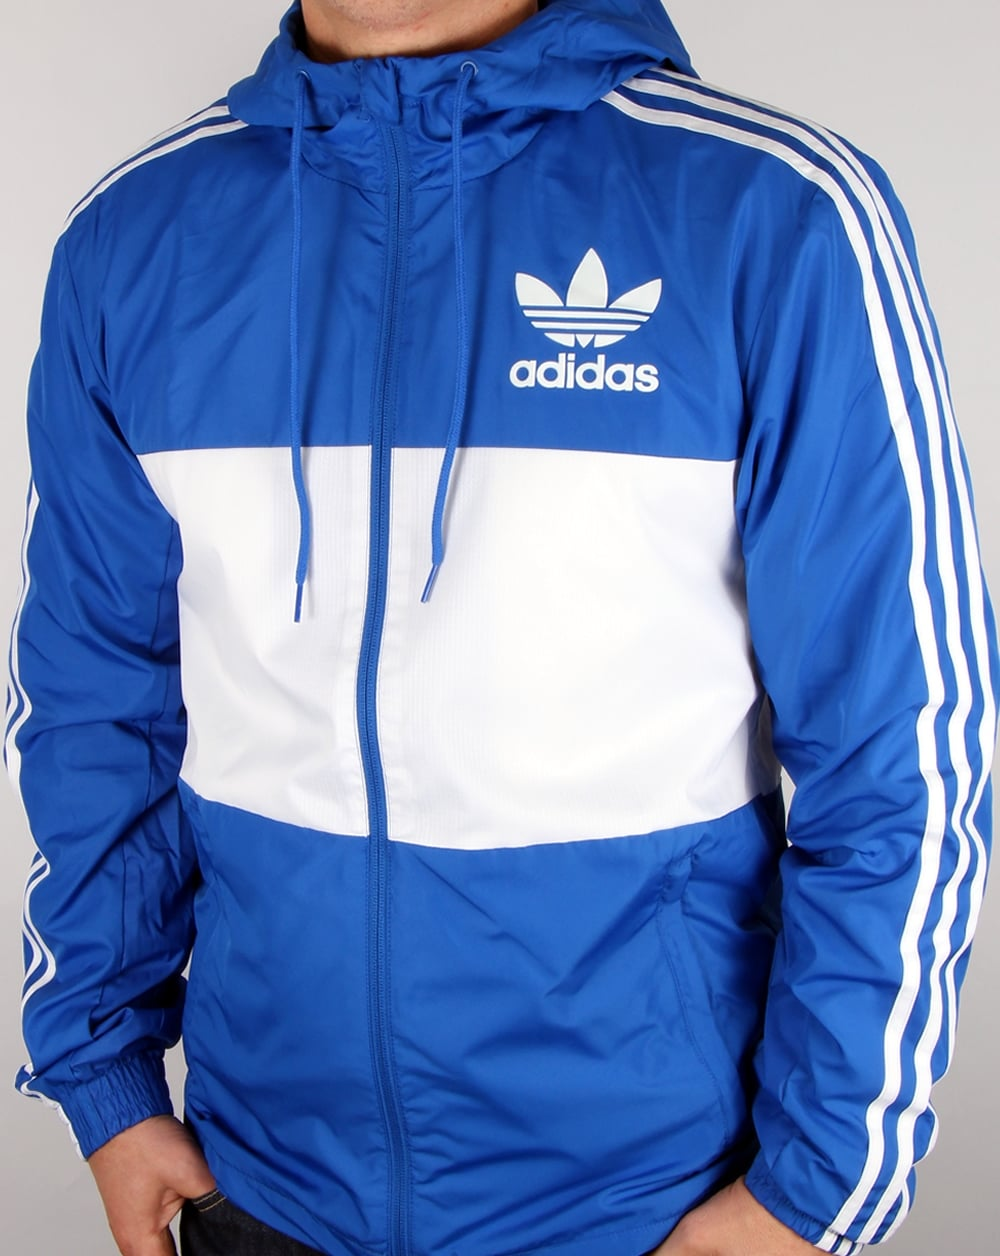 Adidas Originals California Windbreaker Blue/white, Men's, Jacket